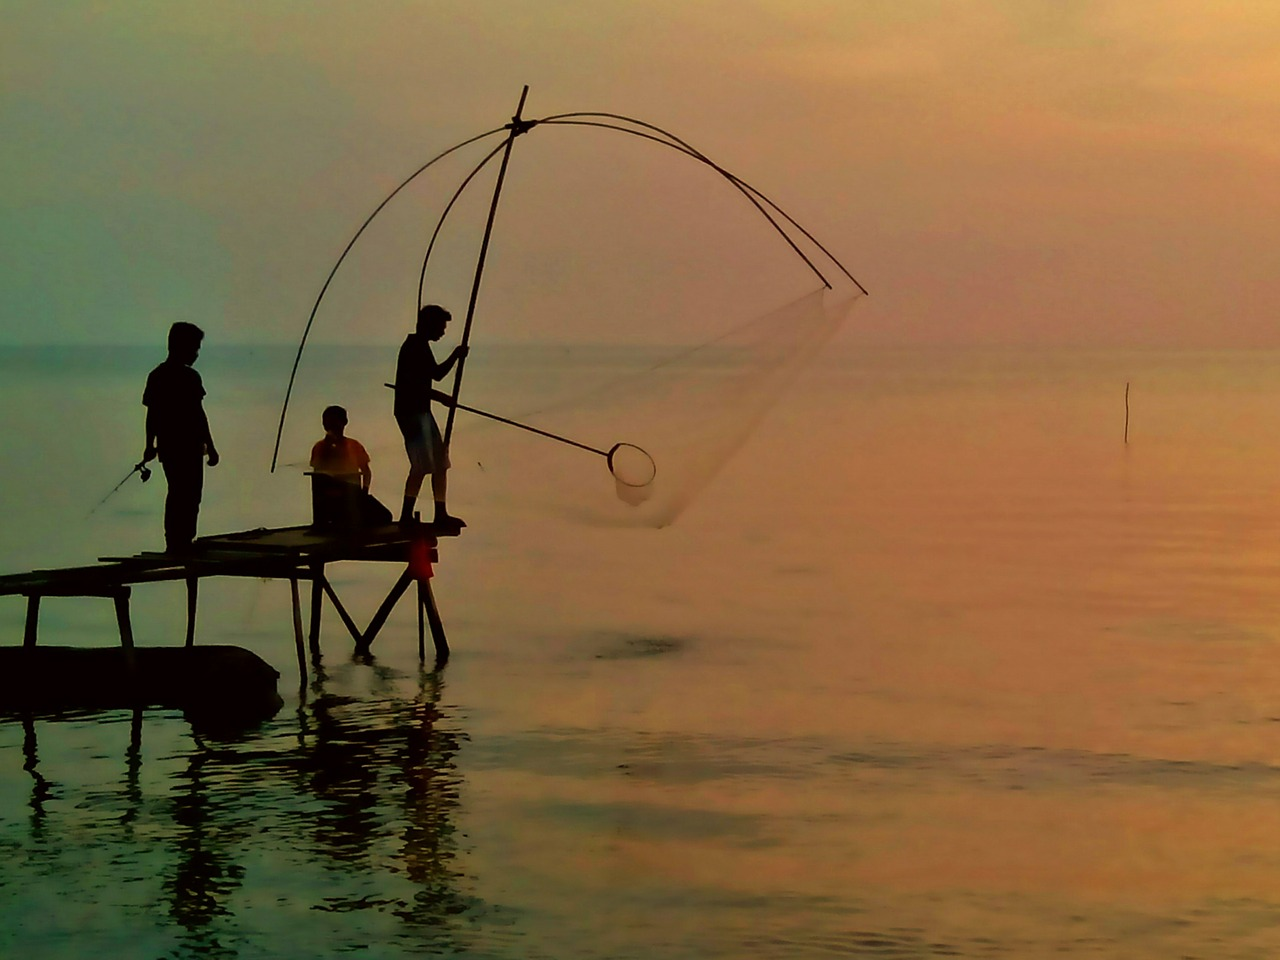 my experience fishing how to fish essay